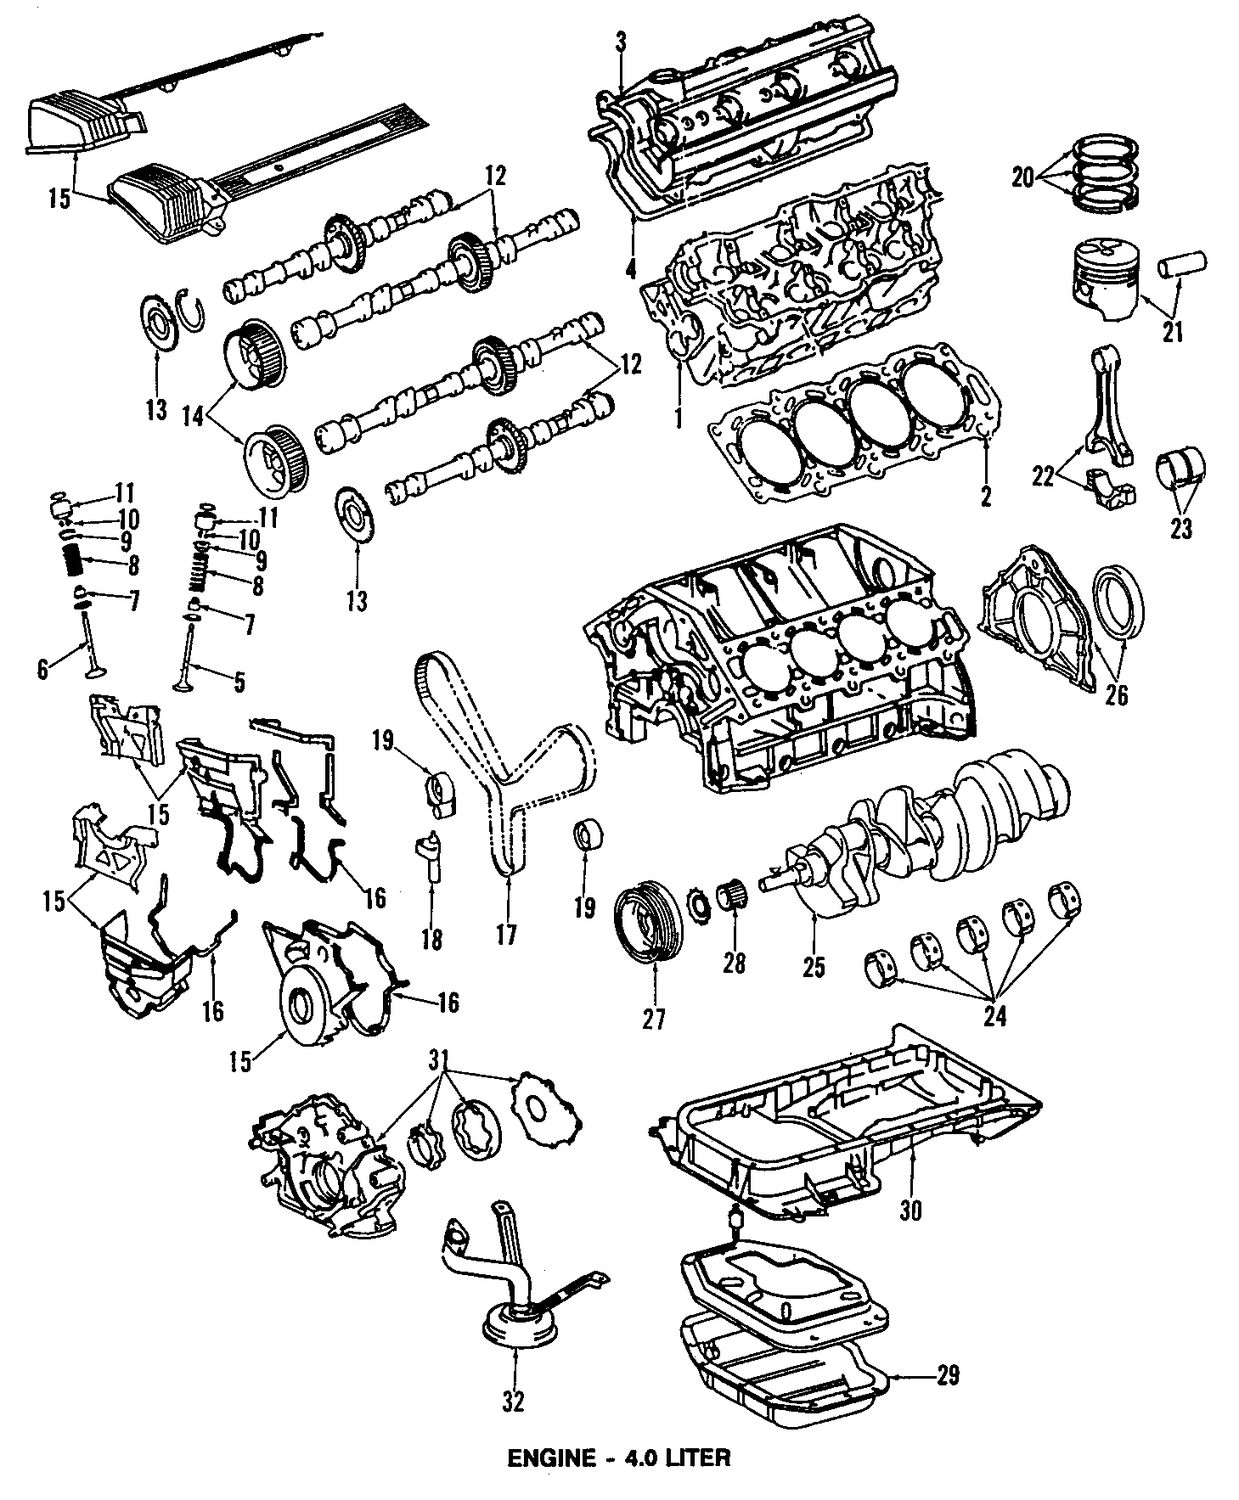 hight resolution of lexus sc400 engine diagram wiring diagrams lfa engine diagram diagram 1997 lexus engine